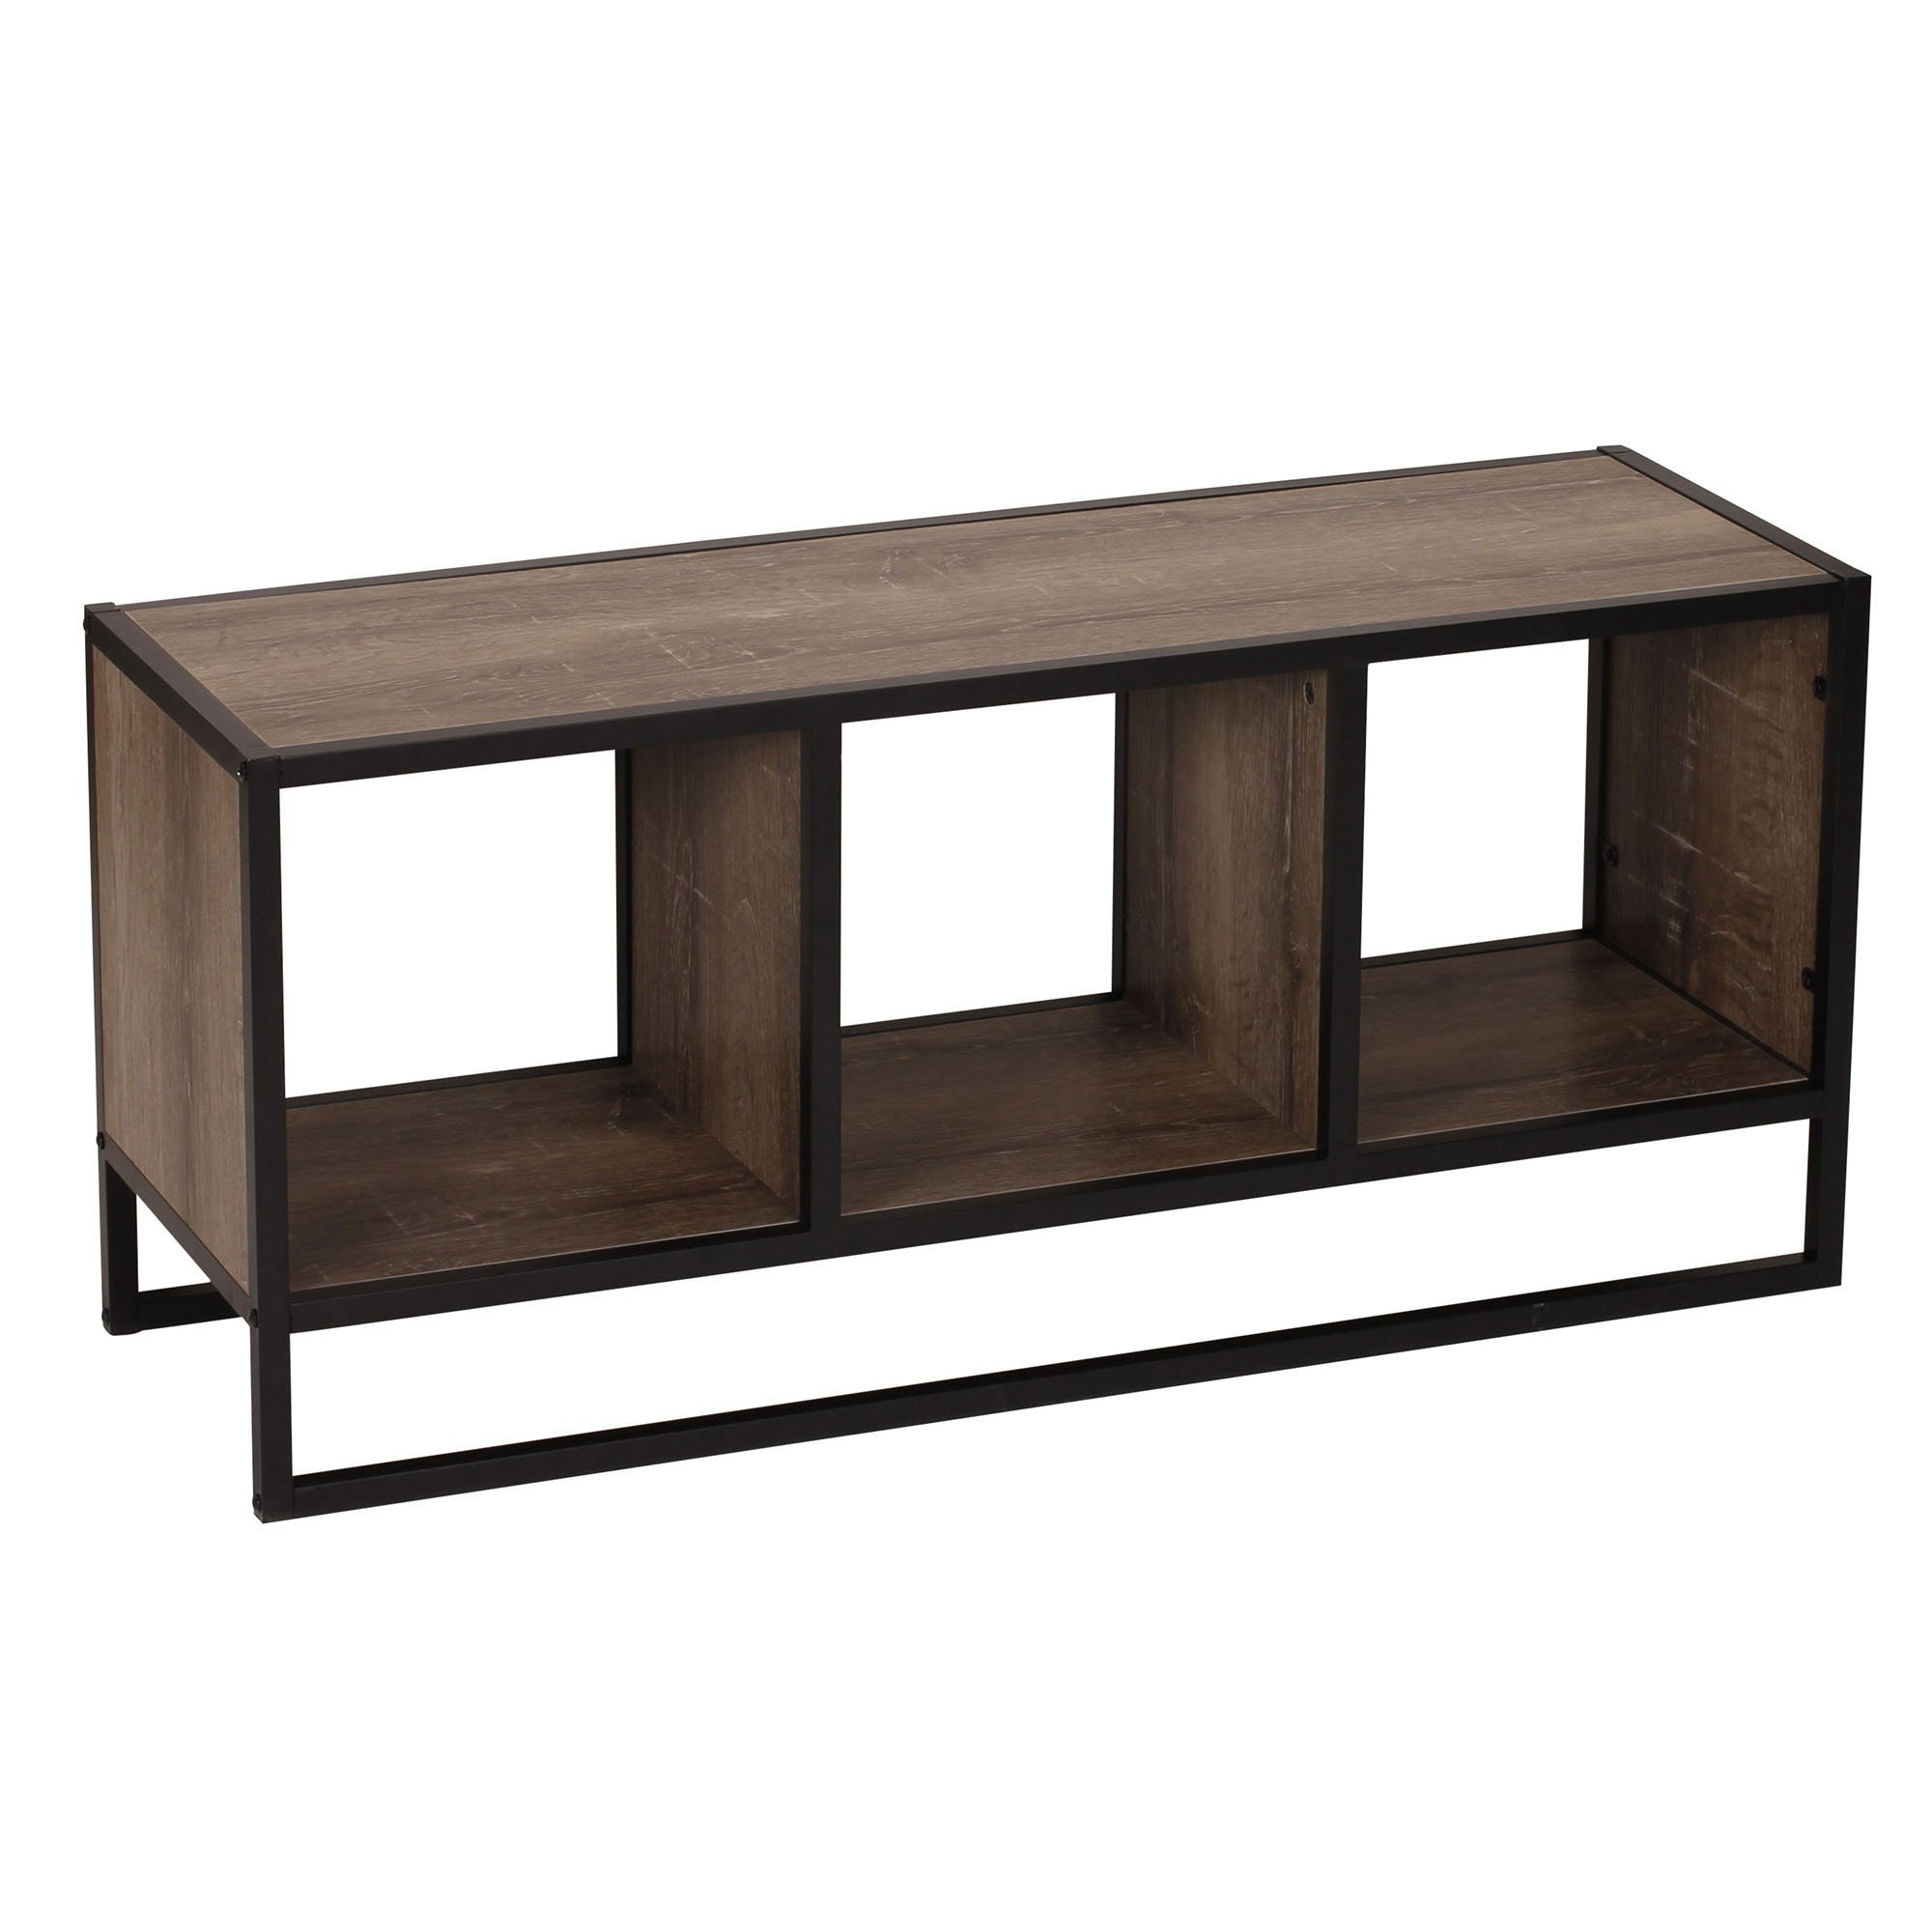 Household Essentials Ashwood Storage Shelf Coffee Table, by Household Essentials